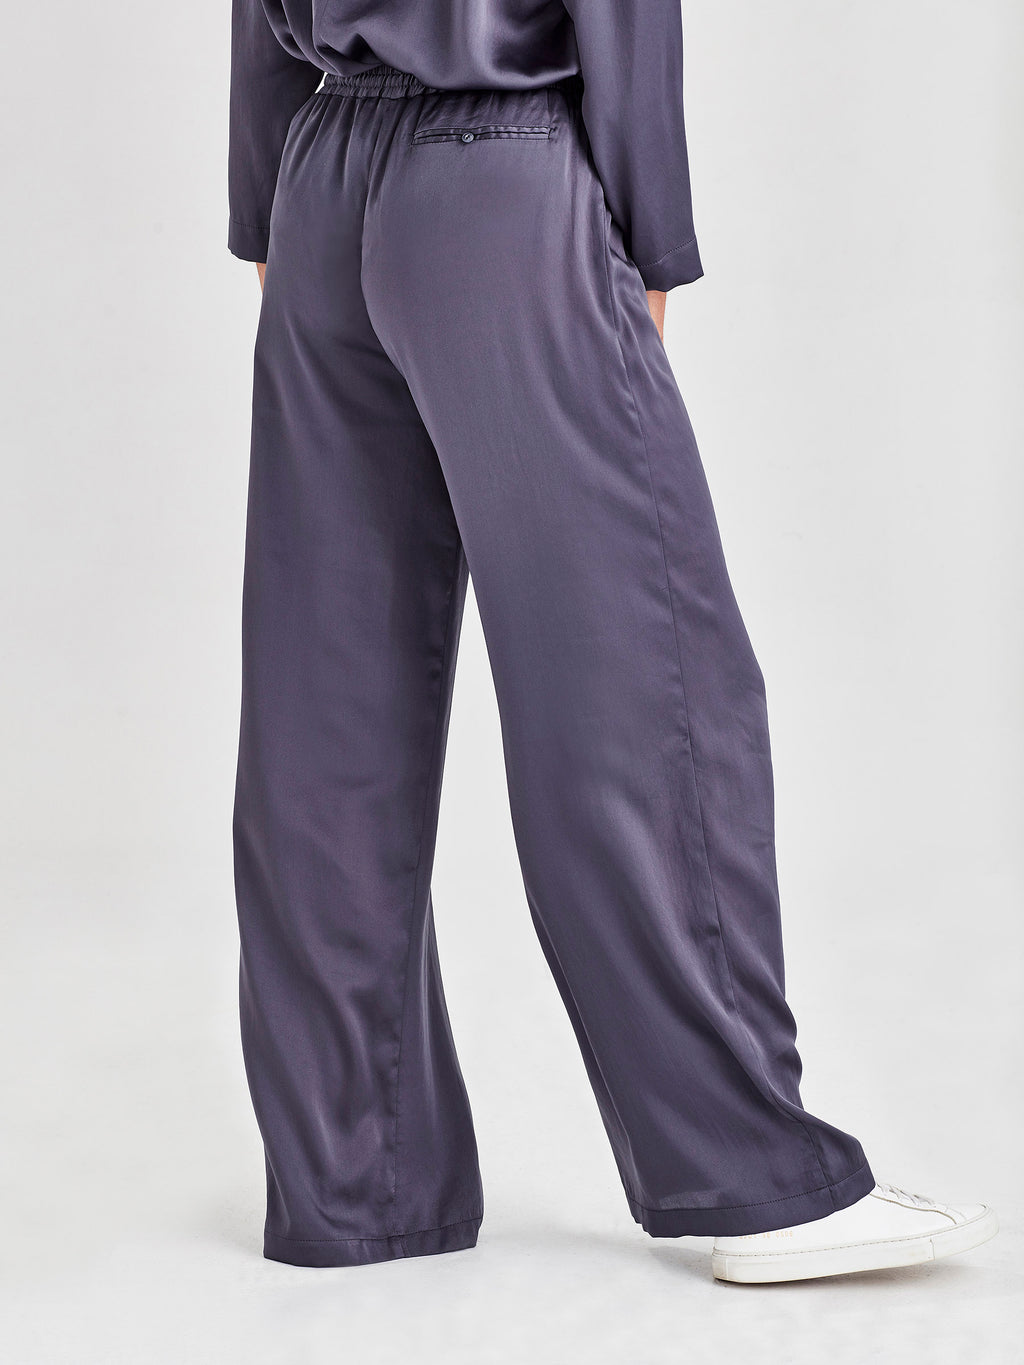 Polly Pant (Satin Triacetate) Smoke